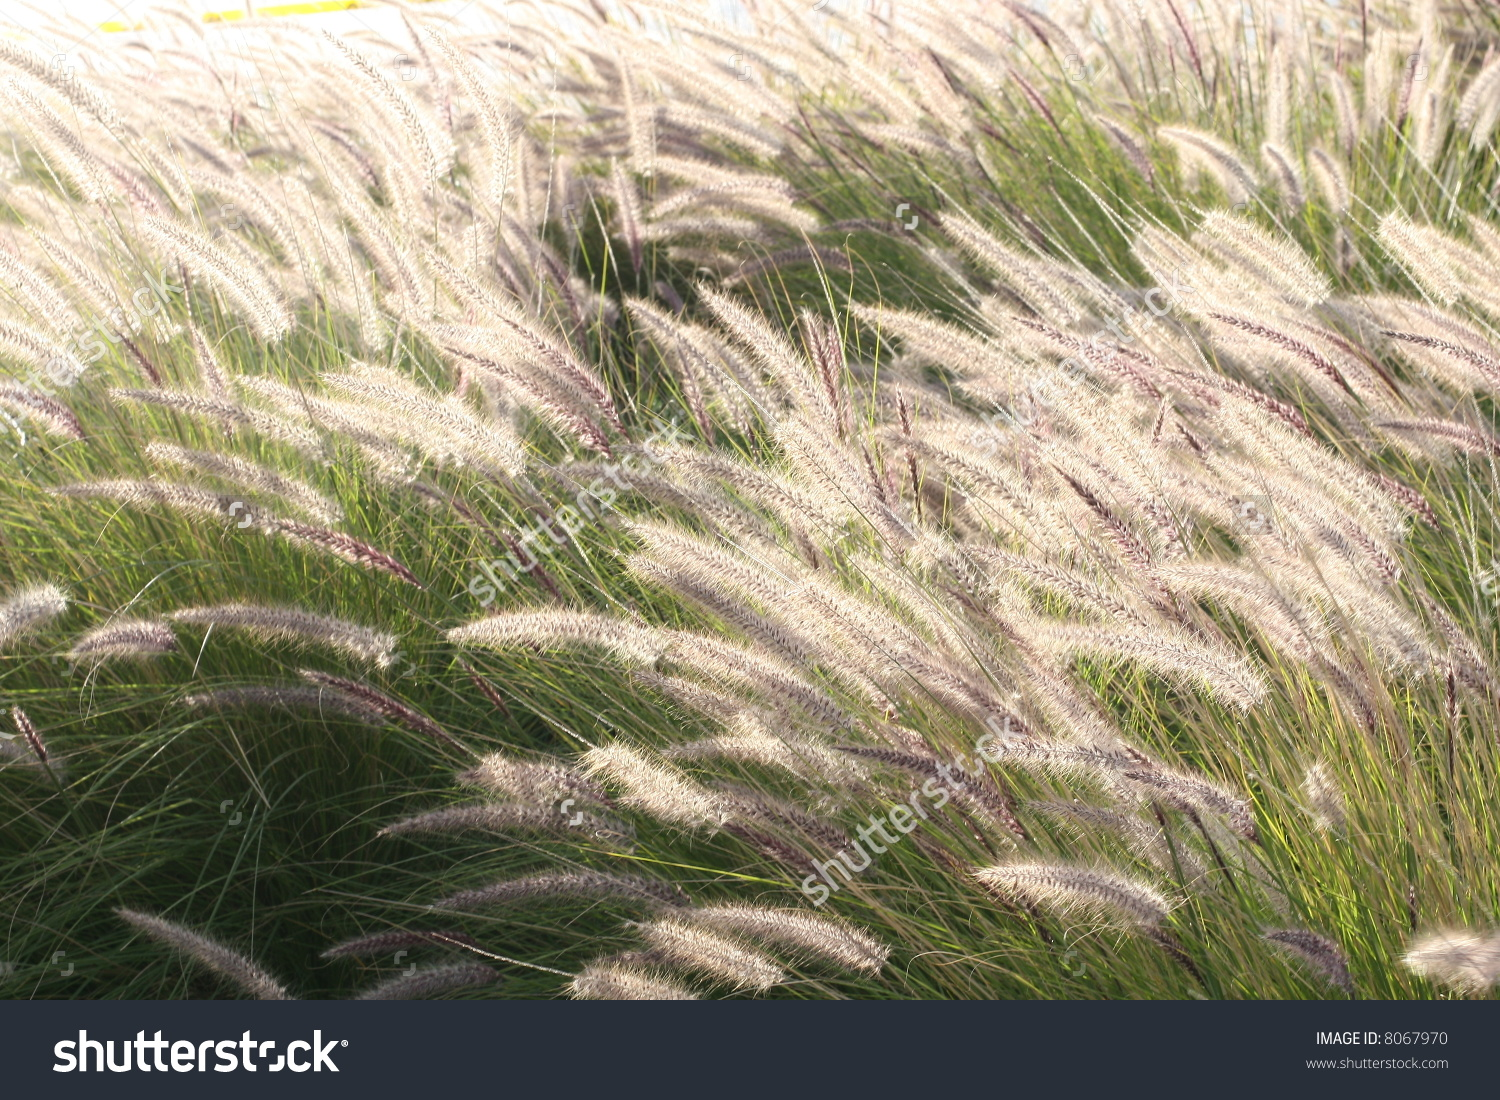 Foxtail Barley Plant Stock Photo 8067970.